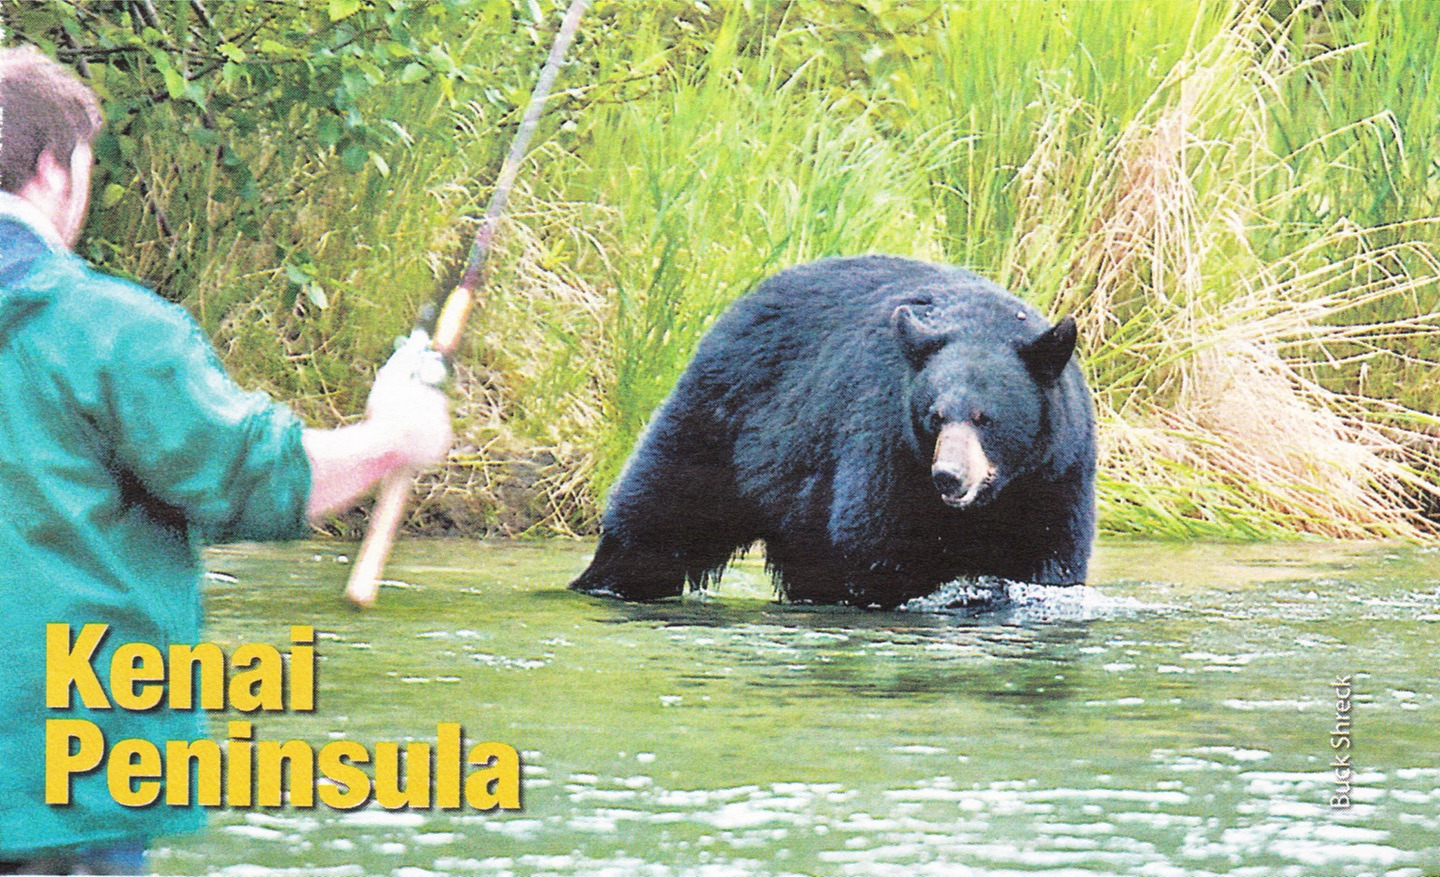 Fishing in Alaska with a black bear.